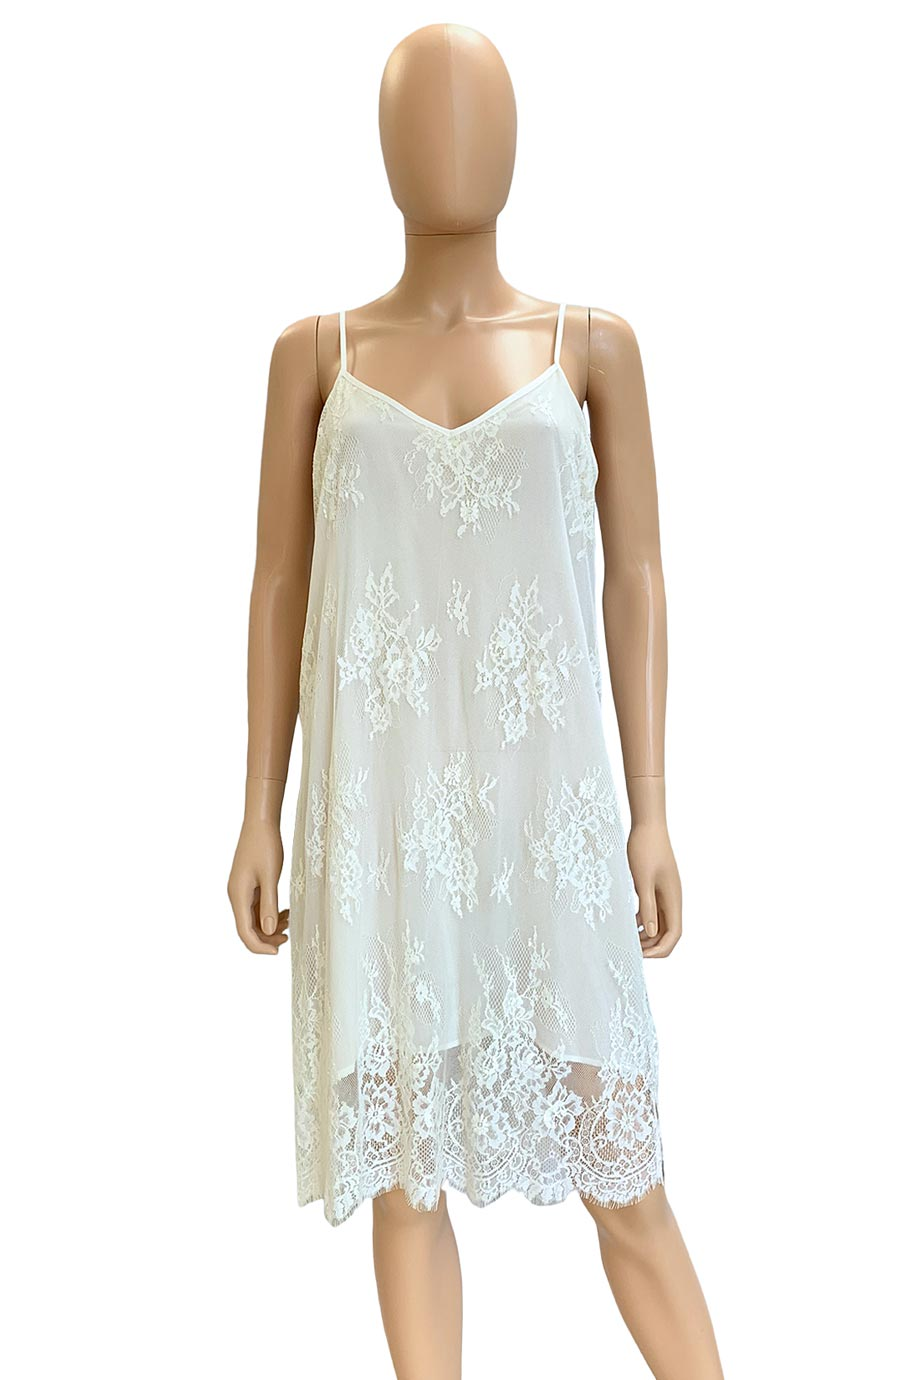 Falcon & Bloom Off-White Lace Slip Dress / Sz S